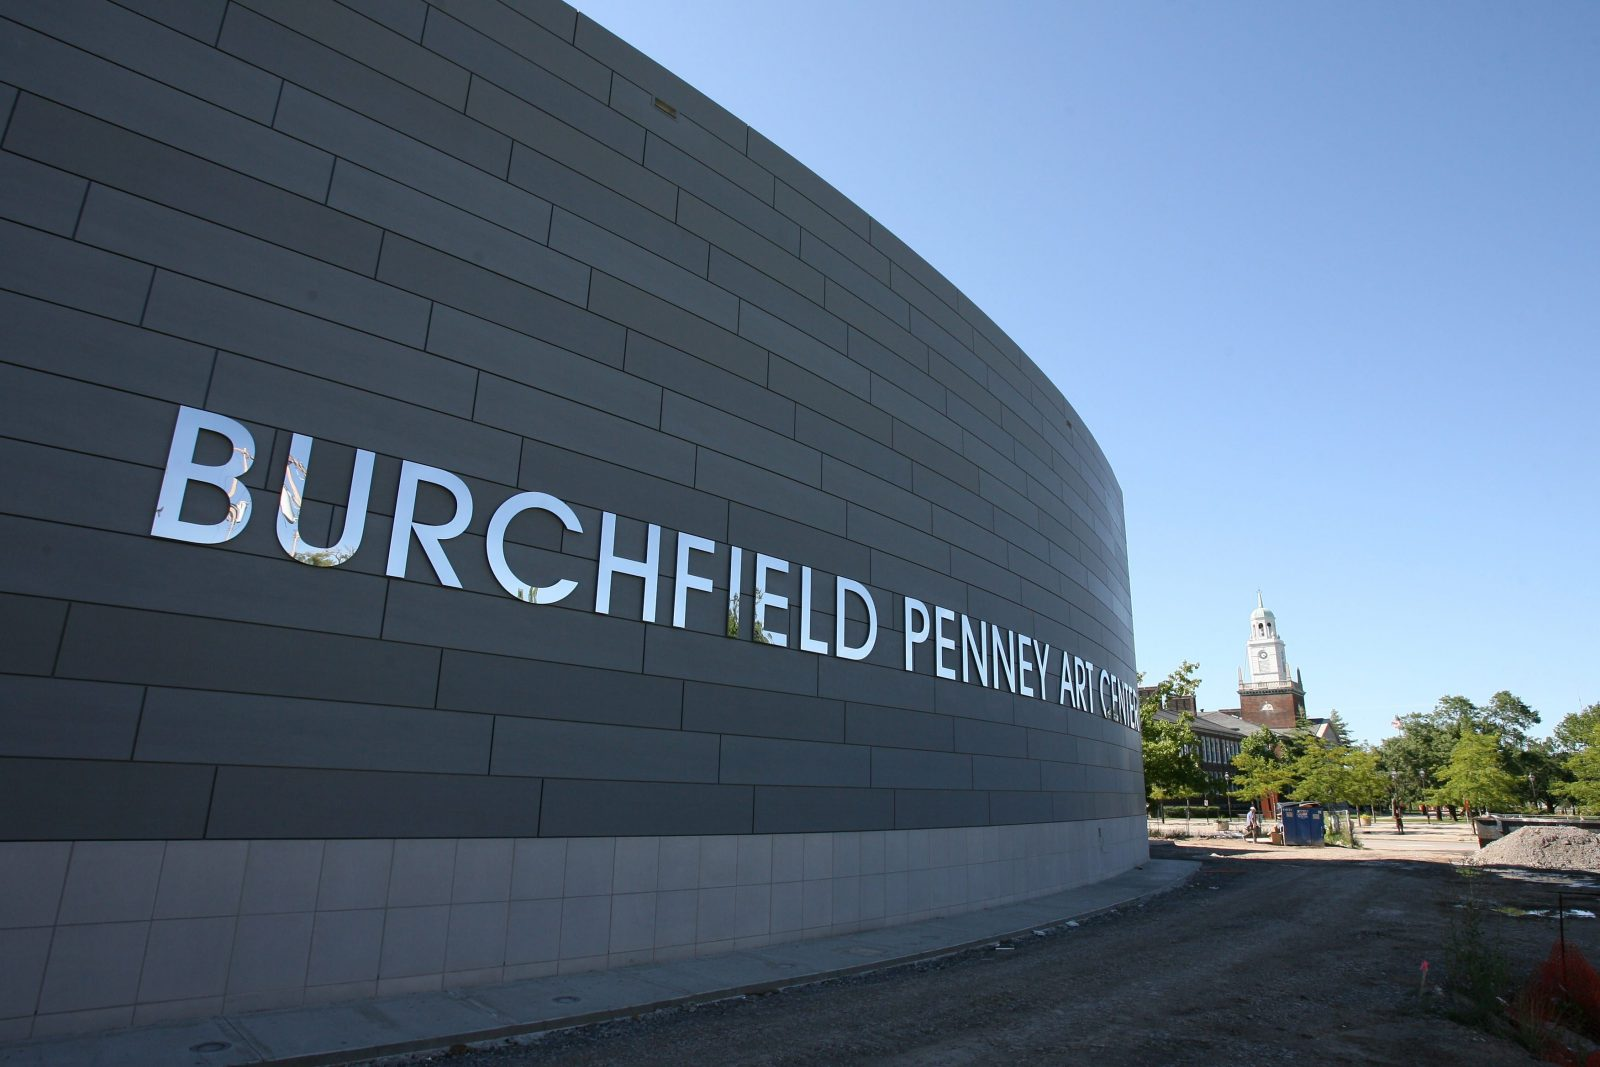 The Burchfield Penney Art Center. (News file photo)